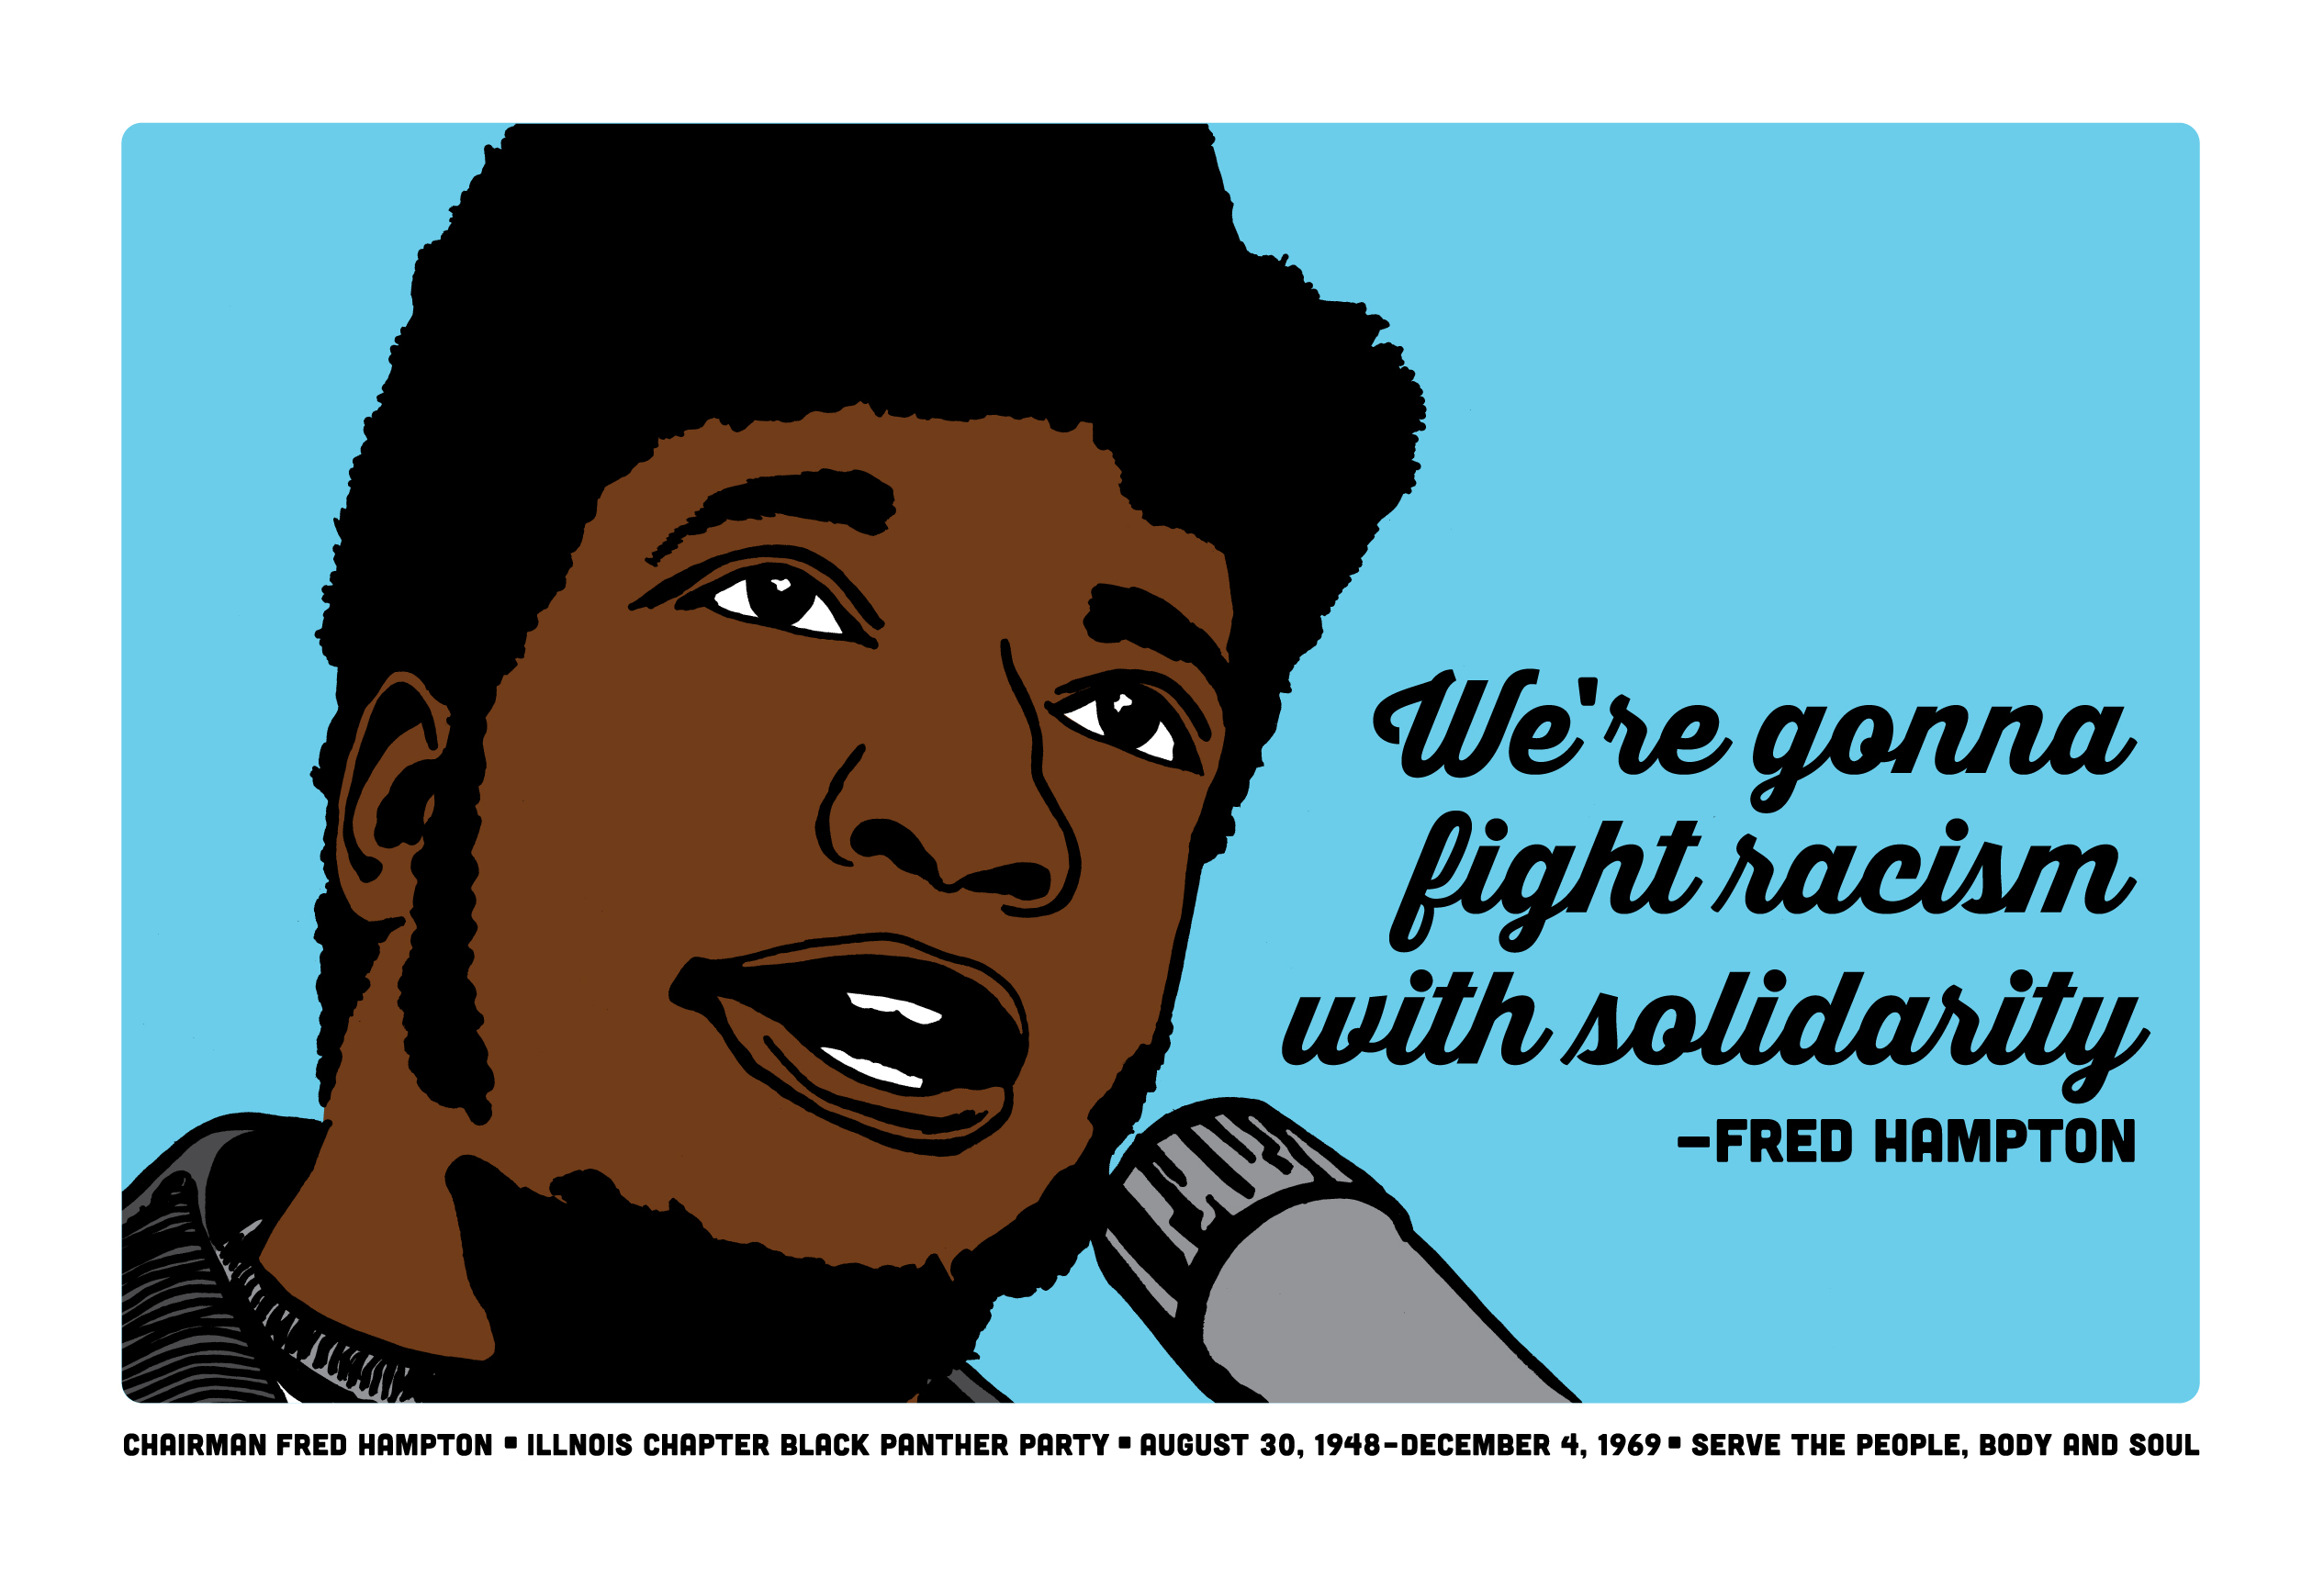 We're going to fight racism with solidarity - Fred Hampton